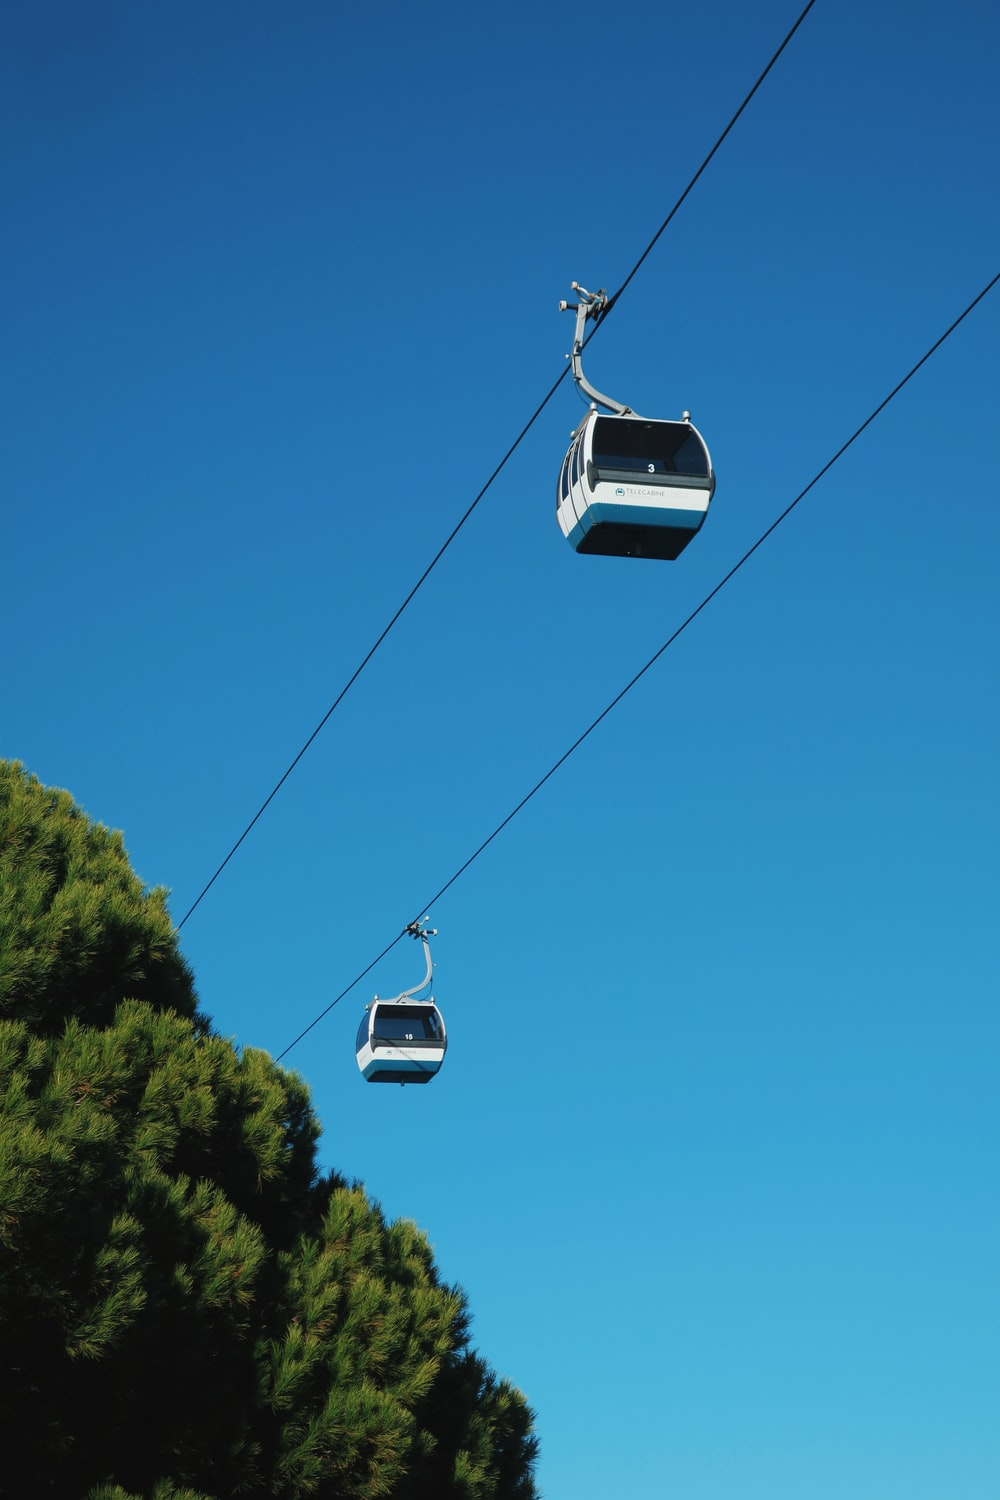 white cable car under blue sky during daytime